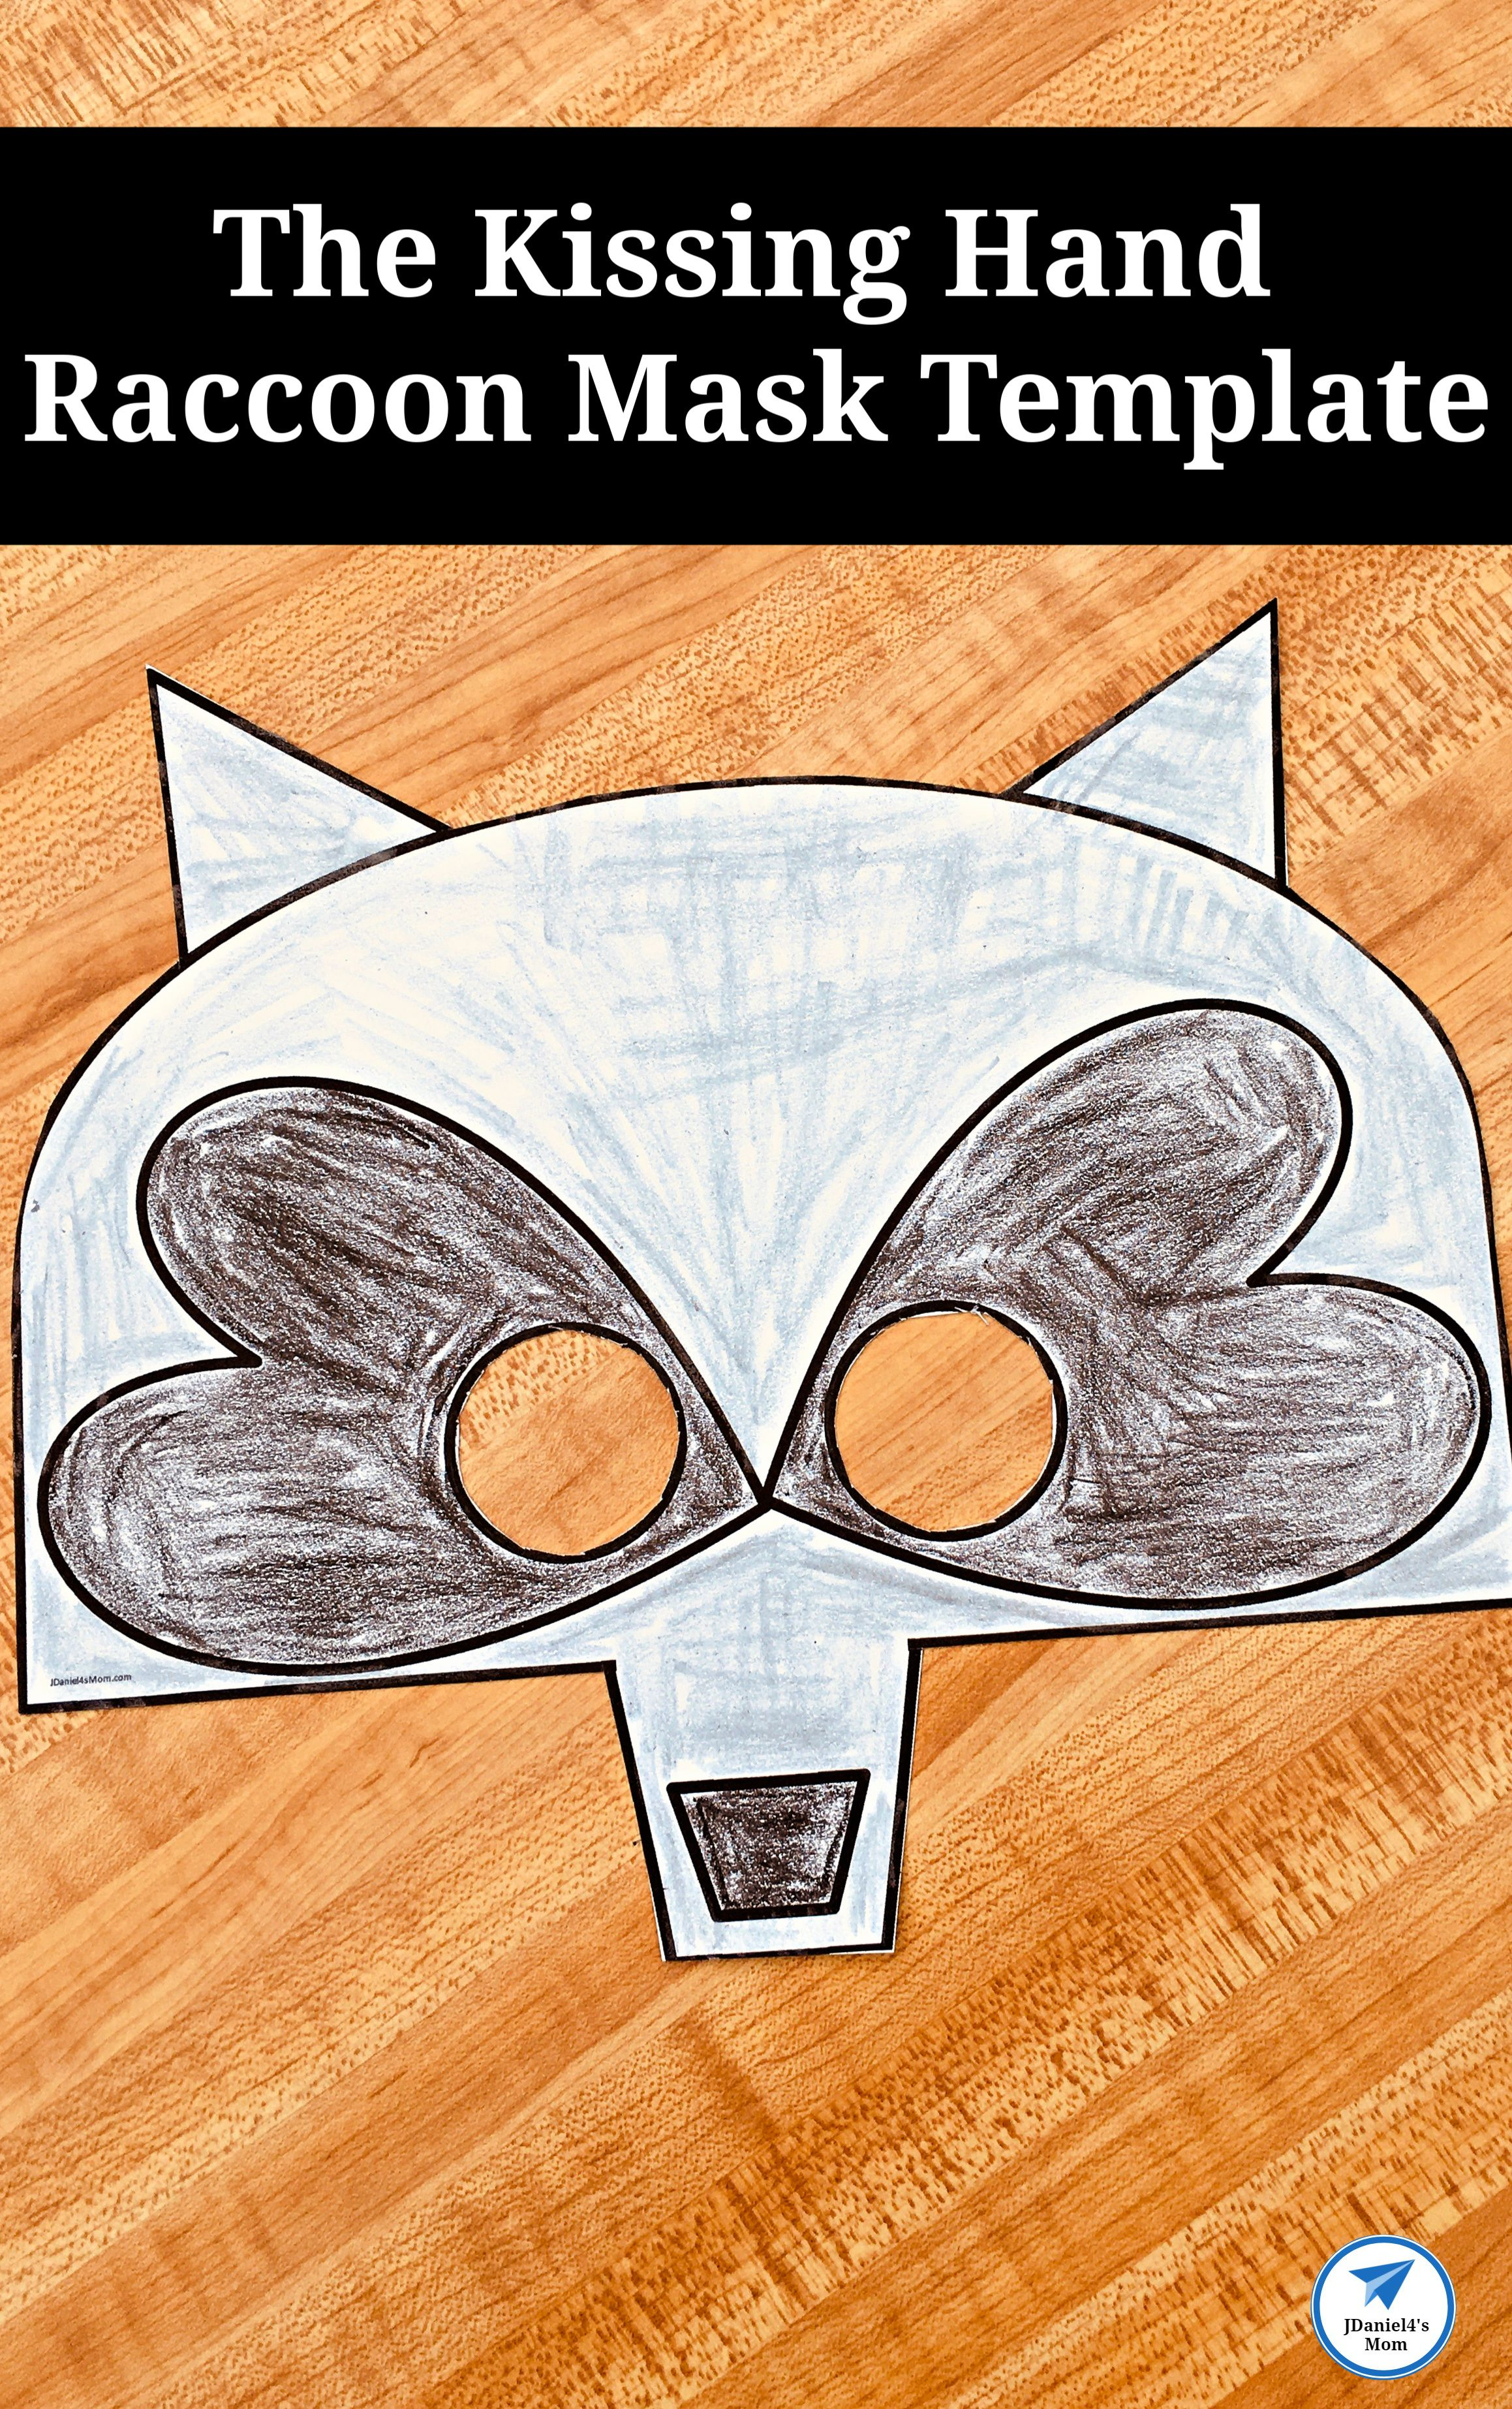 The Kissing Hand Raccoon Mask Template